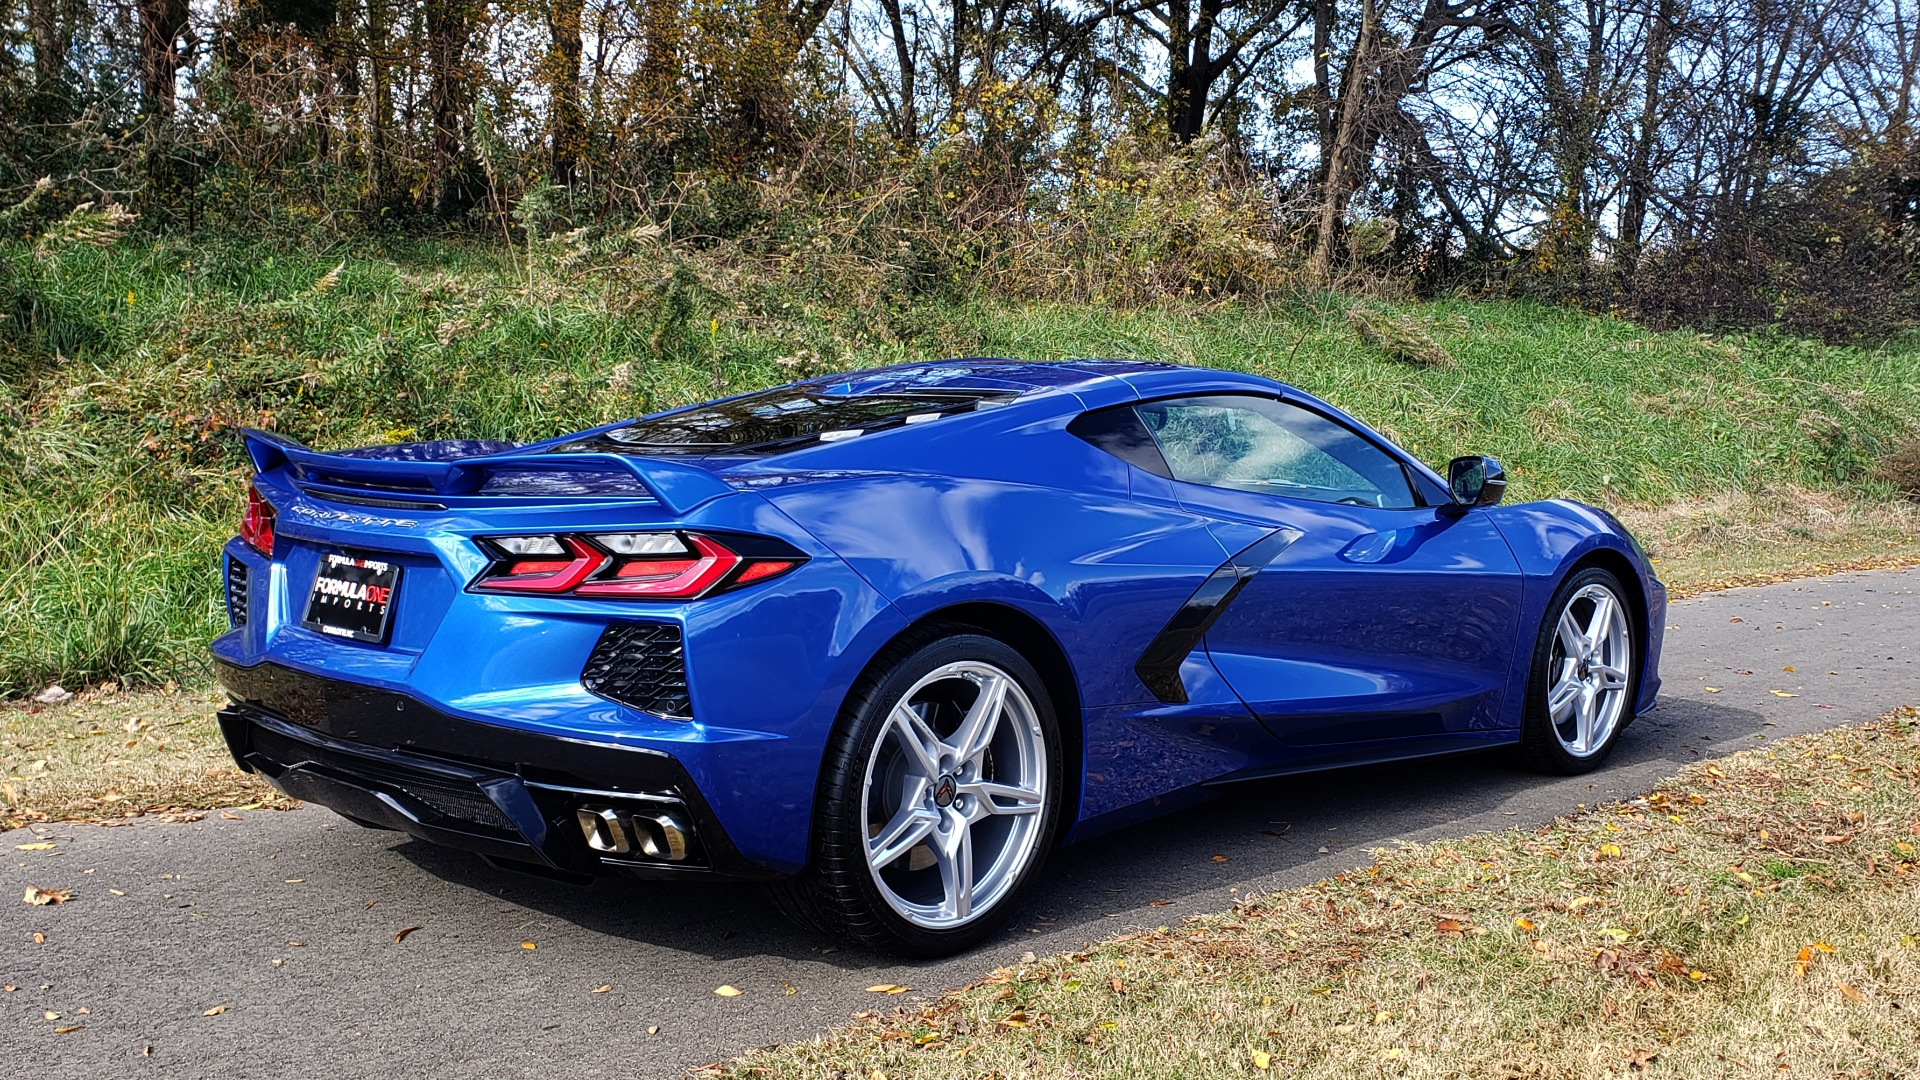 Used 2020 Chevrolet C8 CORVETTE STINGRAY 2LT COUPE / NAV / HUD / BOSE / GT2 SEATS / FRONT LIFT / REARVIEW for sale $98,999 at Formula Imports in Charlotte NC 28227 14